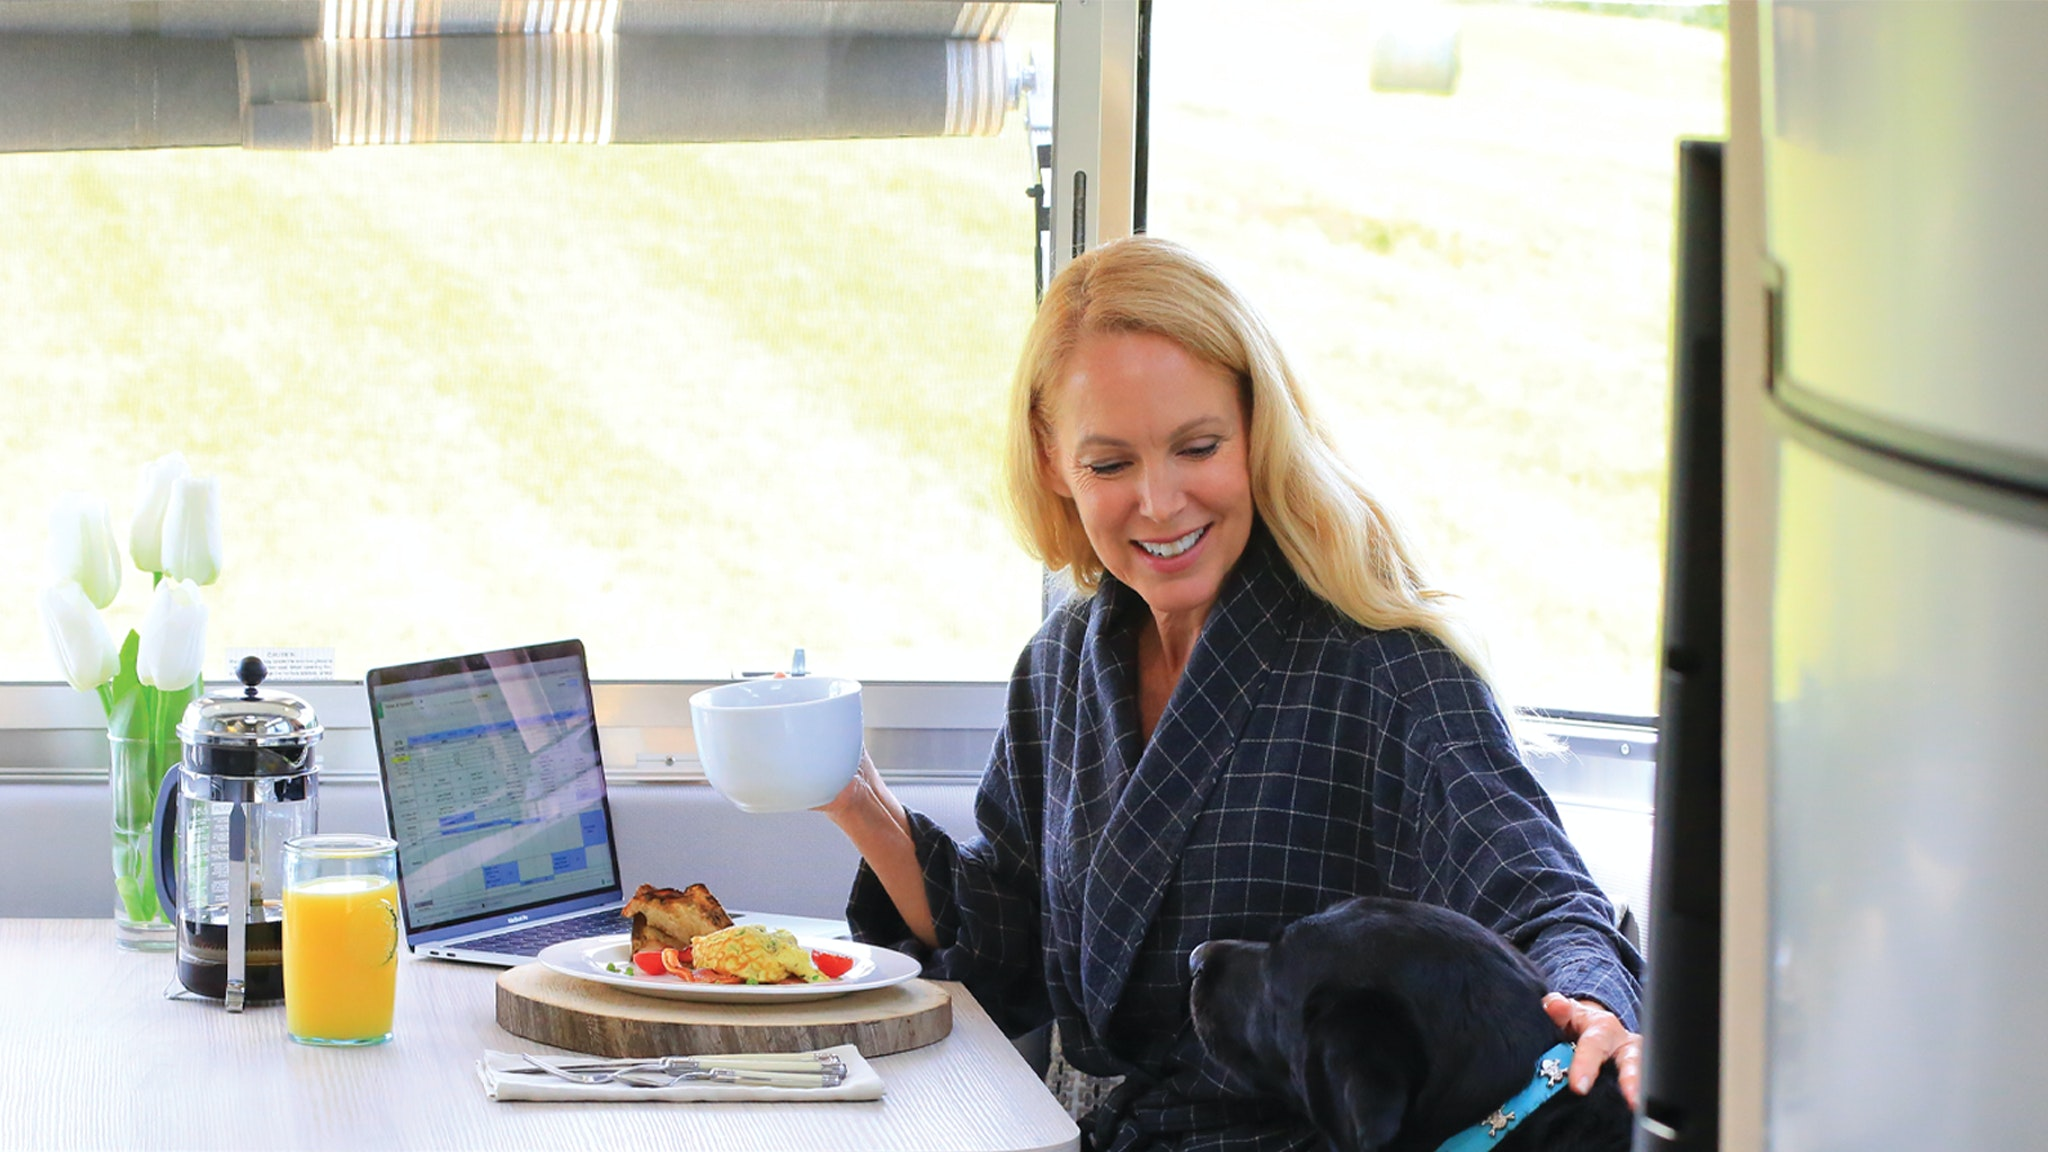 Female Airstreamer sitting in the Galley of her trailer with her dog